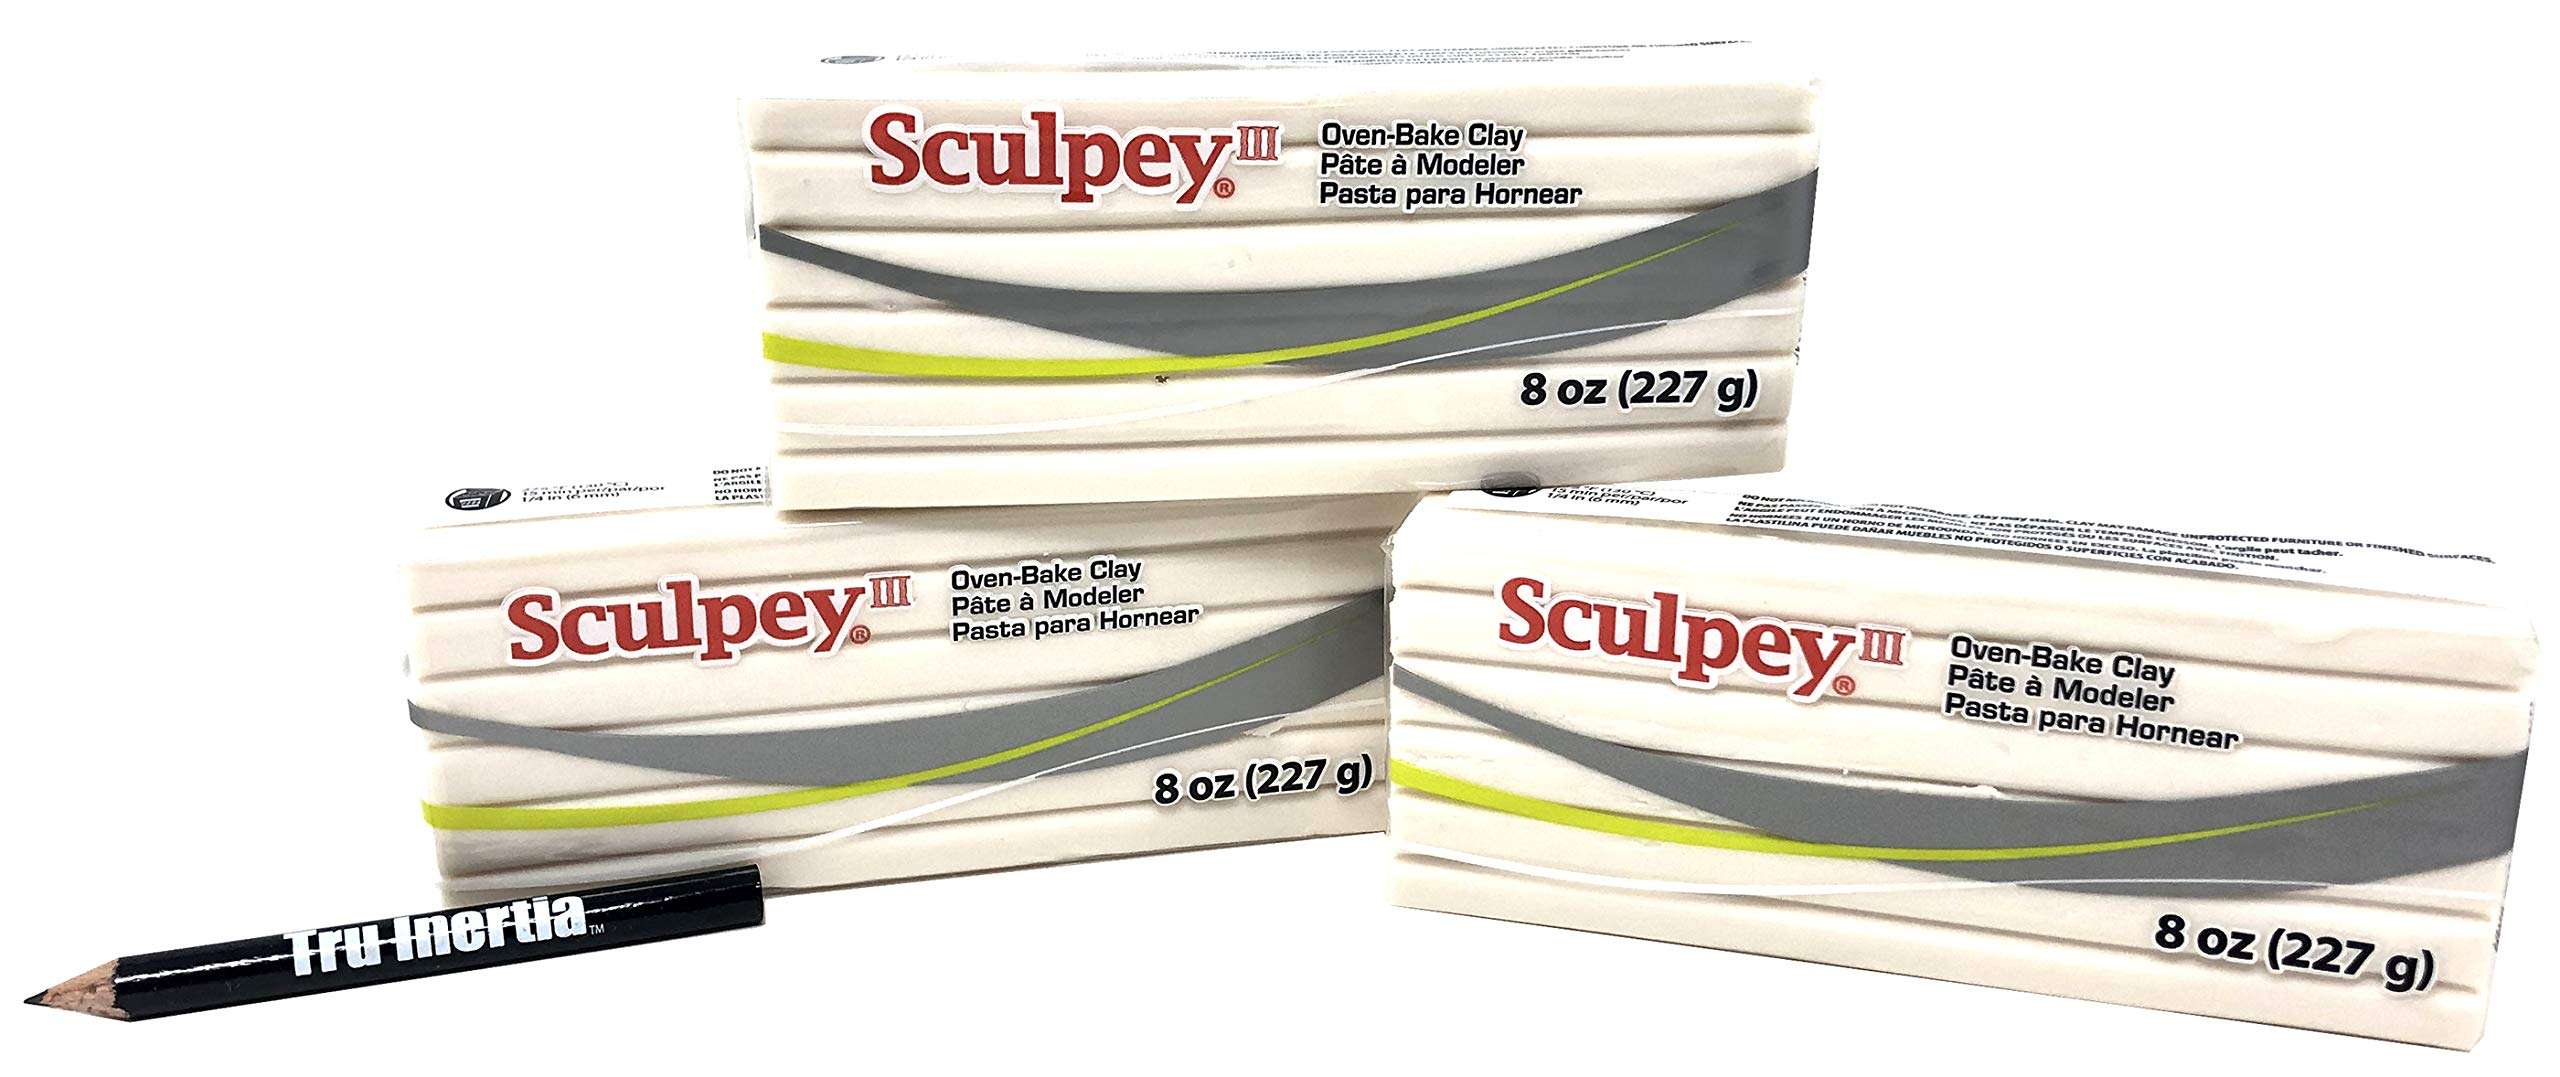 Sculpey III Polymer Clay Oven-Bake Clay Translucent 8 Ounce (Pack of 3) with Tru Inertia Pencil